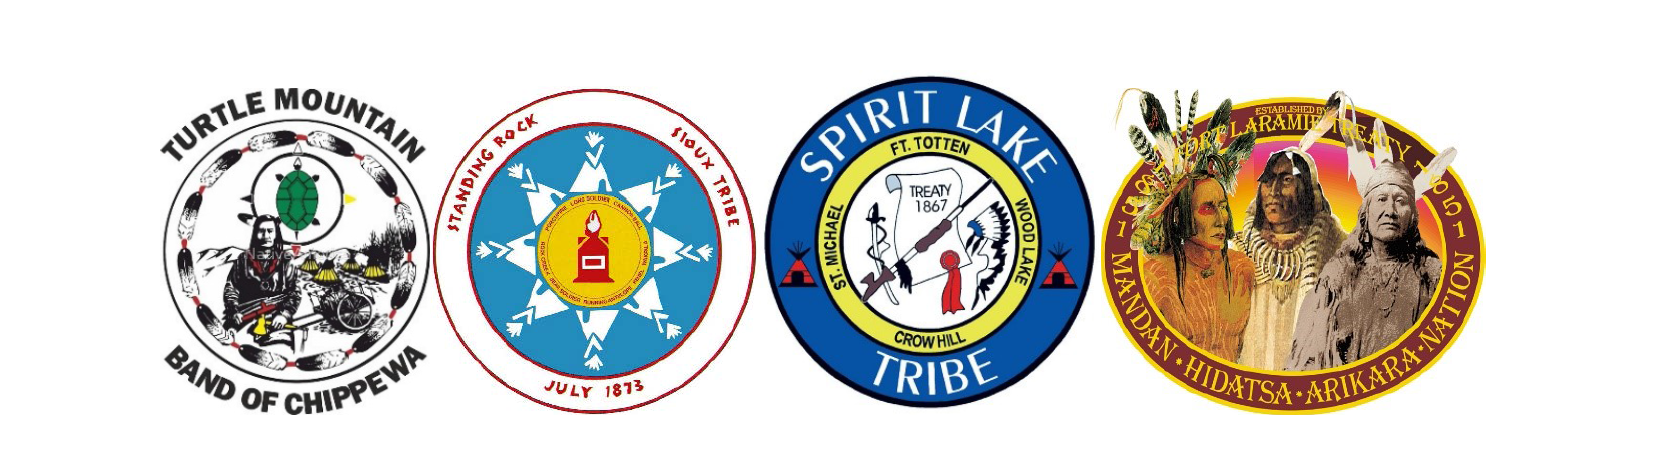 Voting In North Dakotas 2018 Election Native American Rights Fund